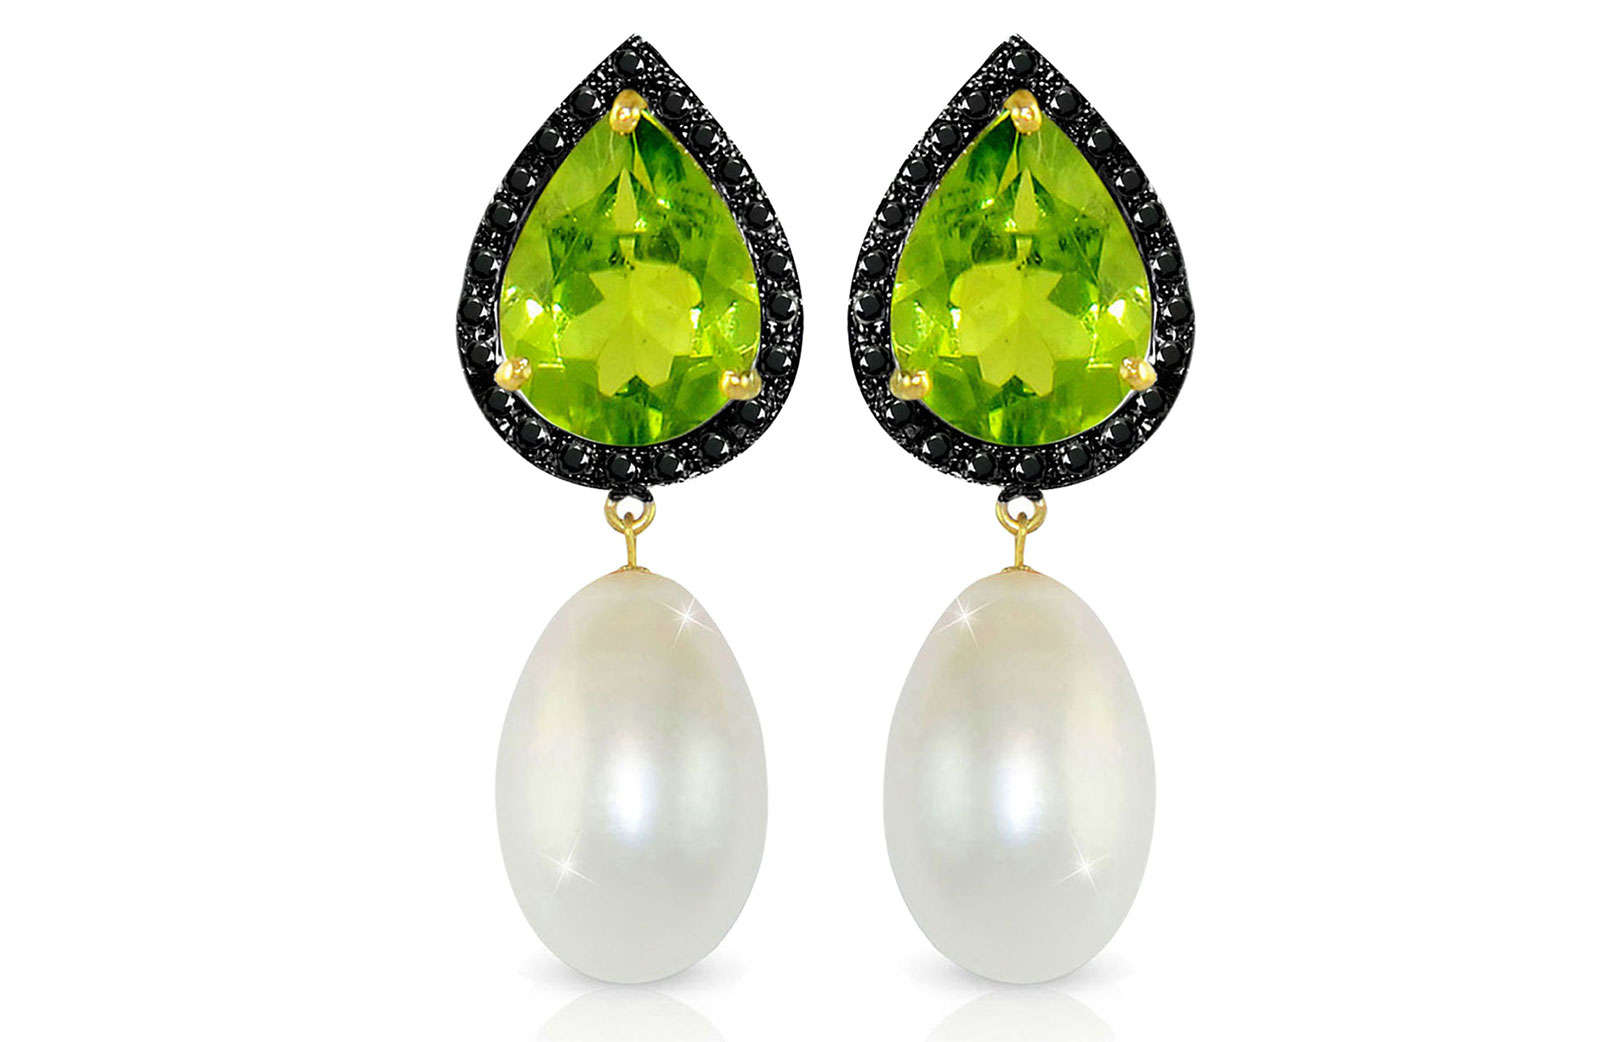 Vera Perla 18K Gold 0.24ct Black Diamonds, Peridot and 13mm White Pearl Earrings